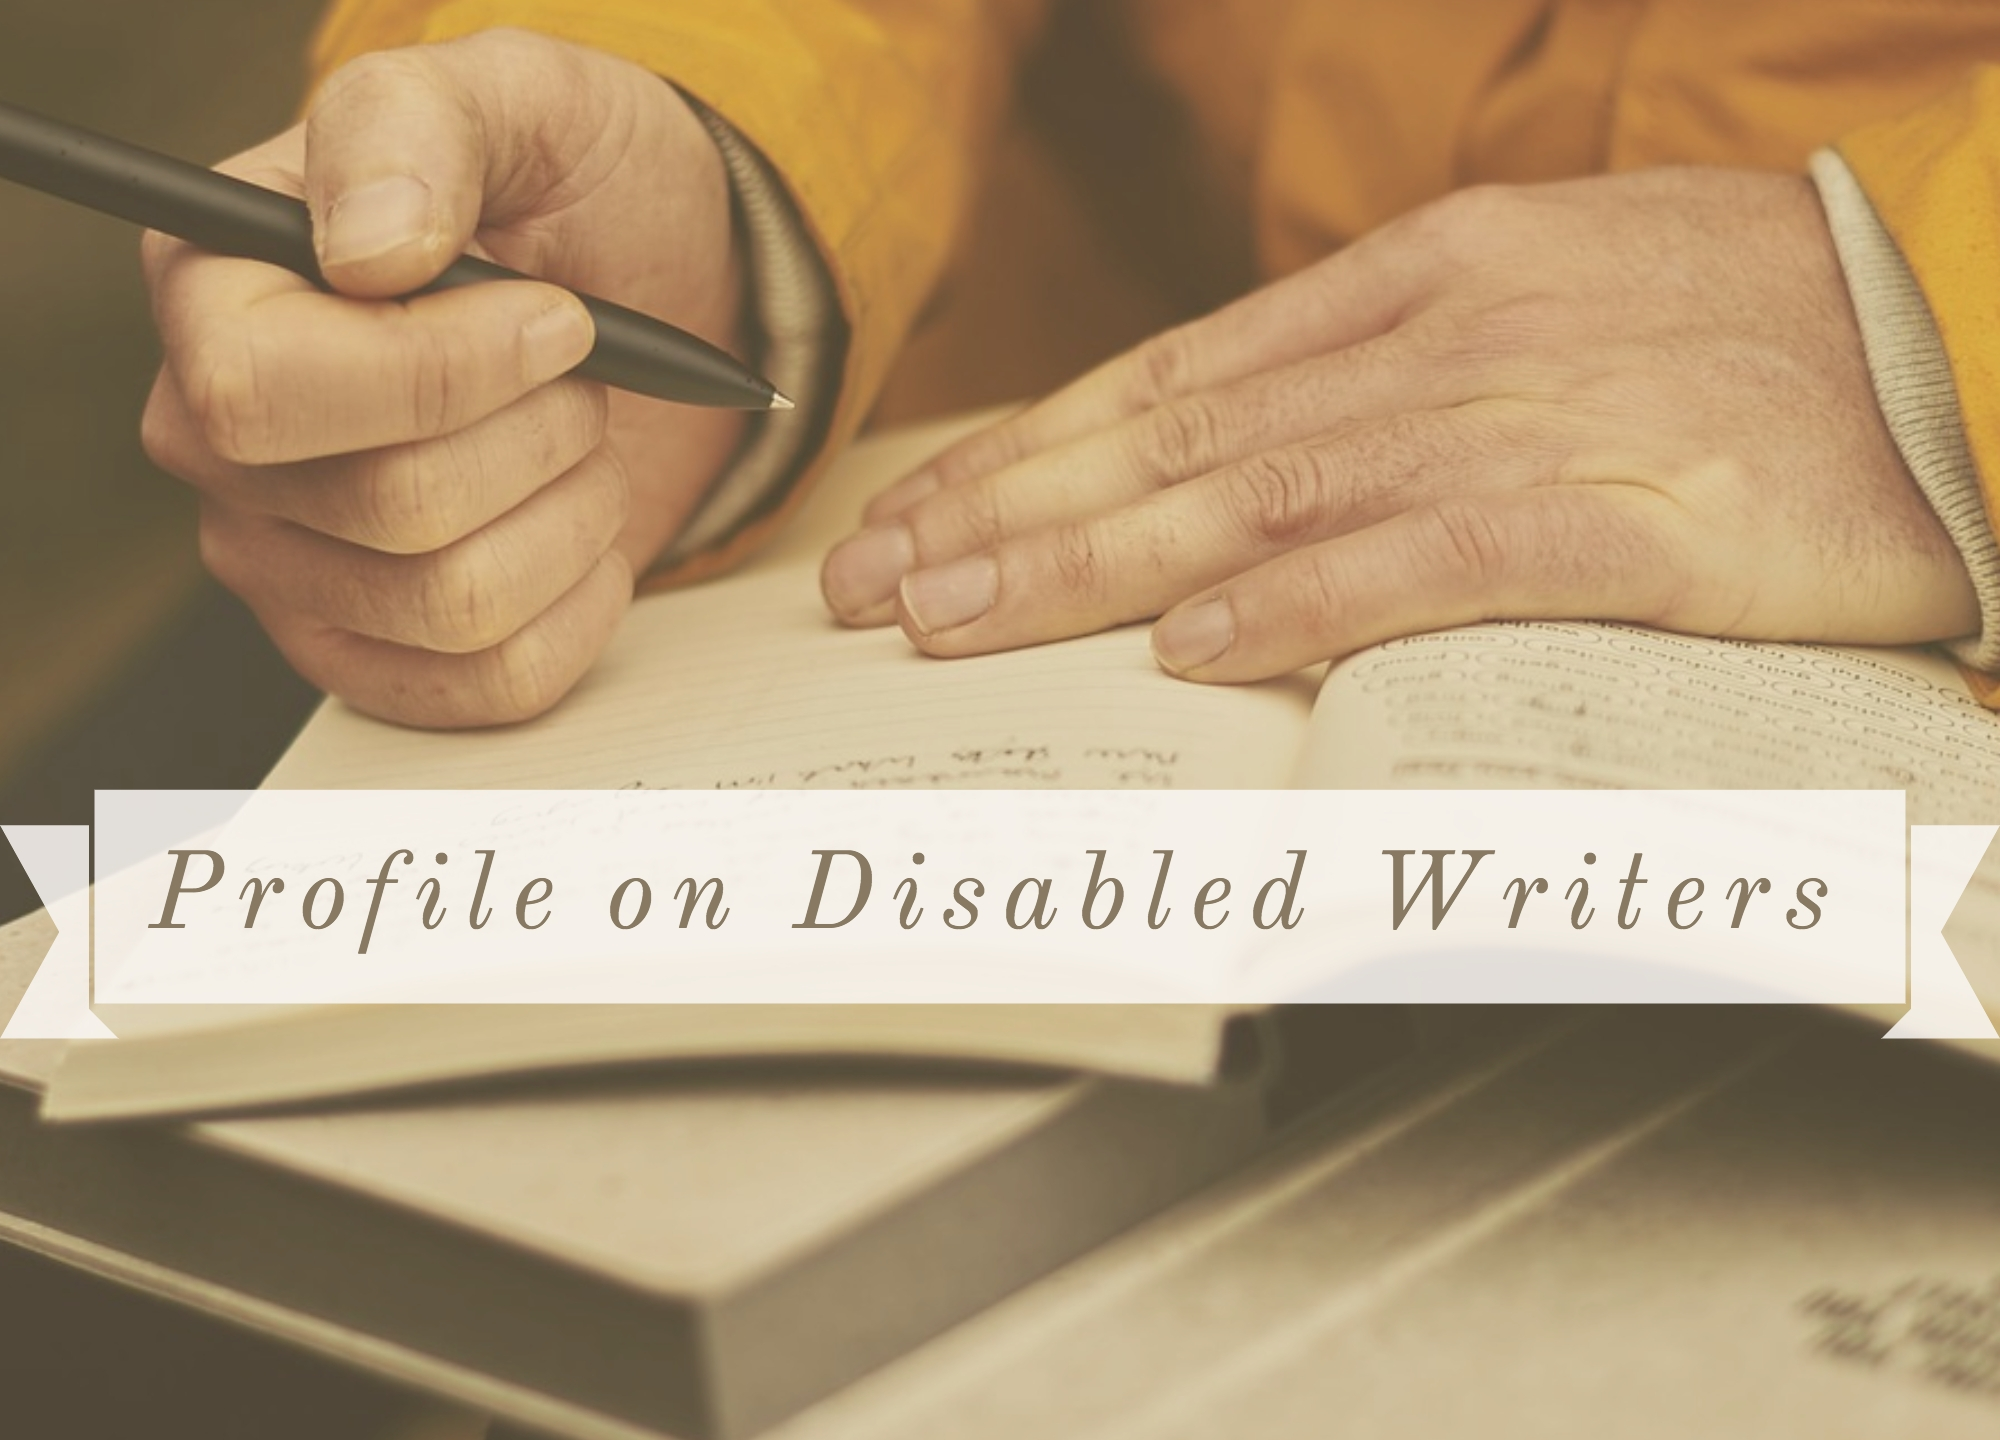 """Open notebooks on person's lap with one hand holding a pen and the other resting on page. Off-white banner with brown text reading """"Profile on Disabled Writers"""""""